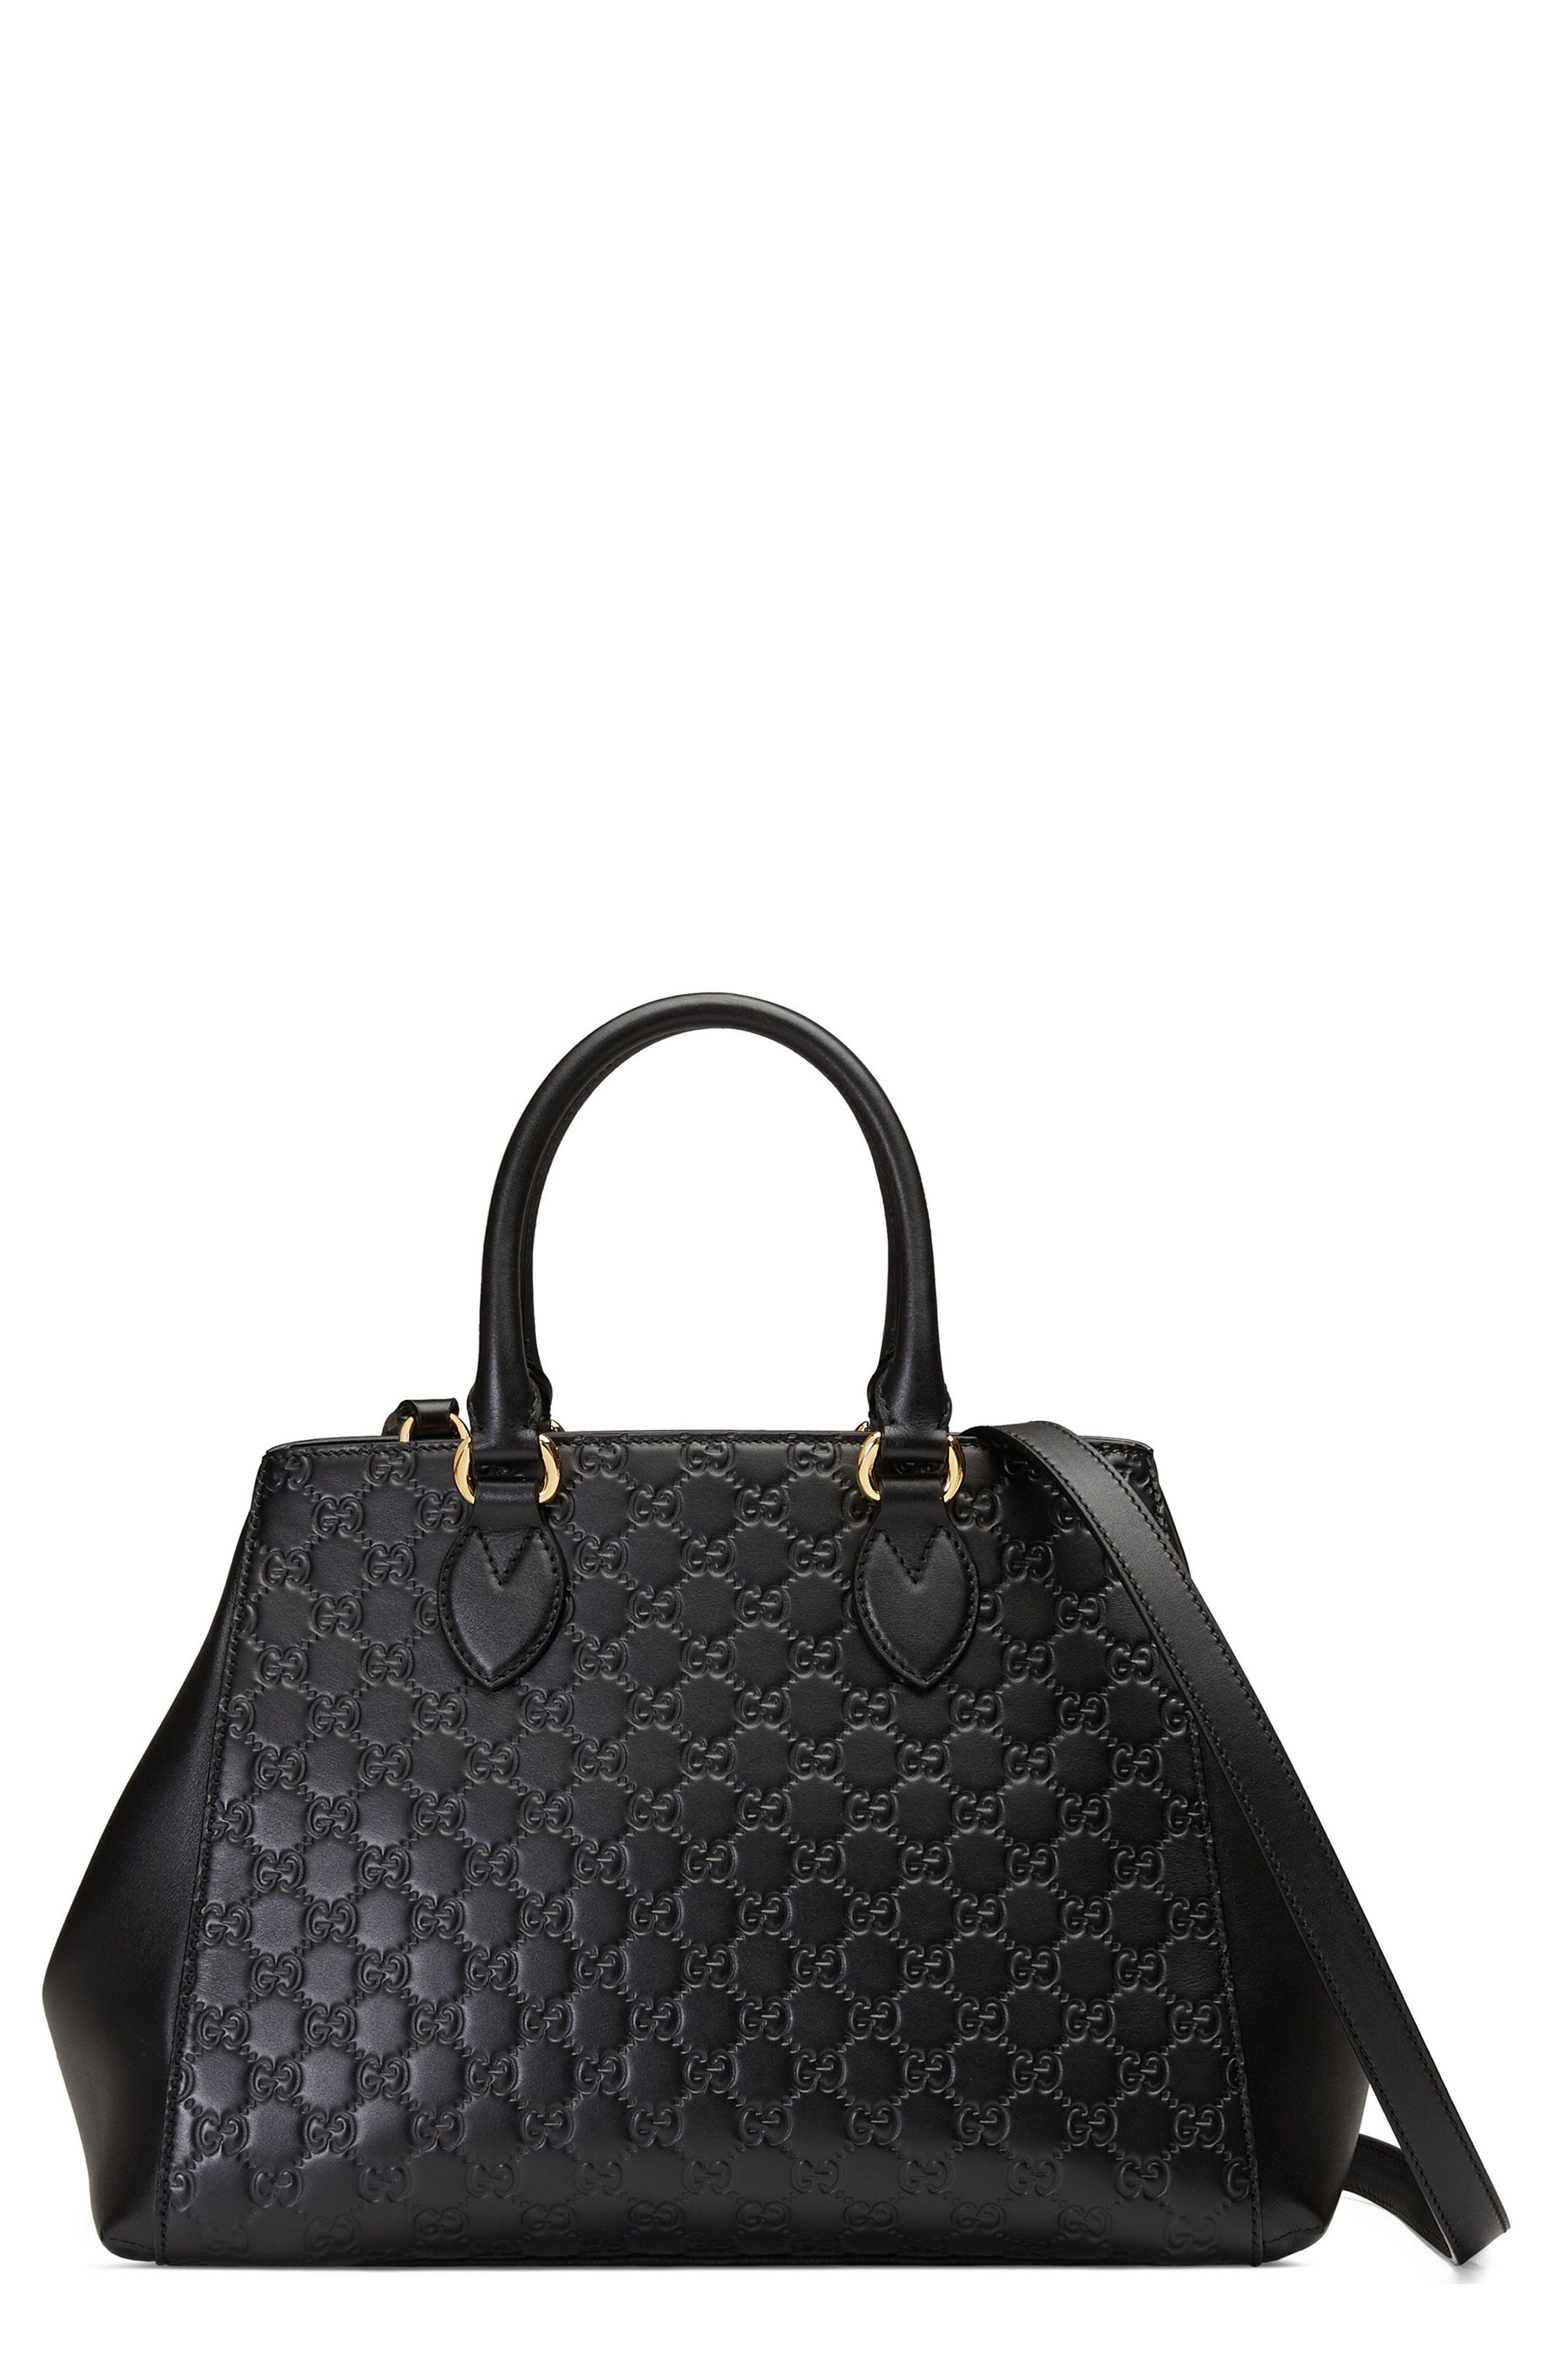 4a95e81918f New Gucci Large Top Handle Signature Soft Leather Tote fashion online.    1980   shop.seehandbags